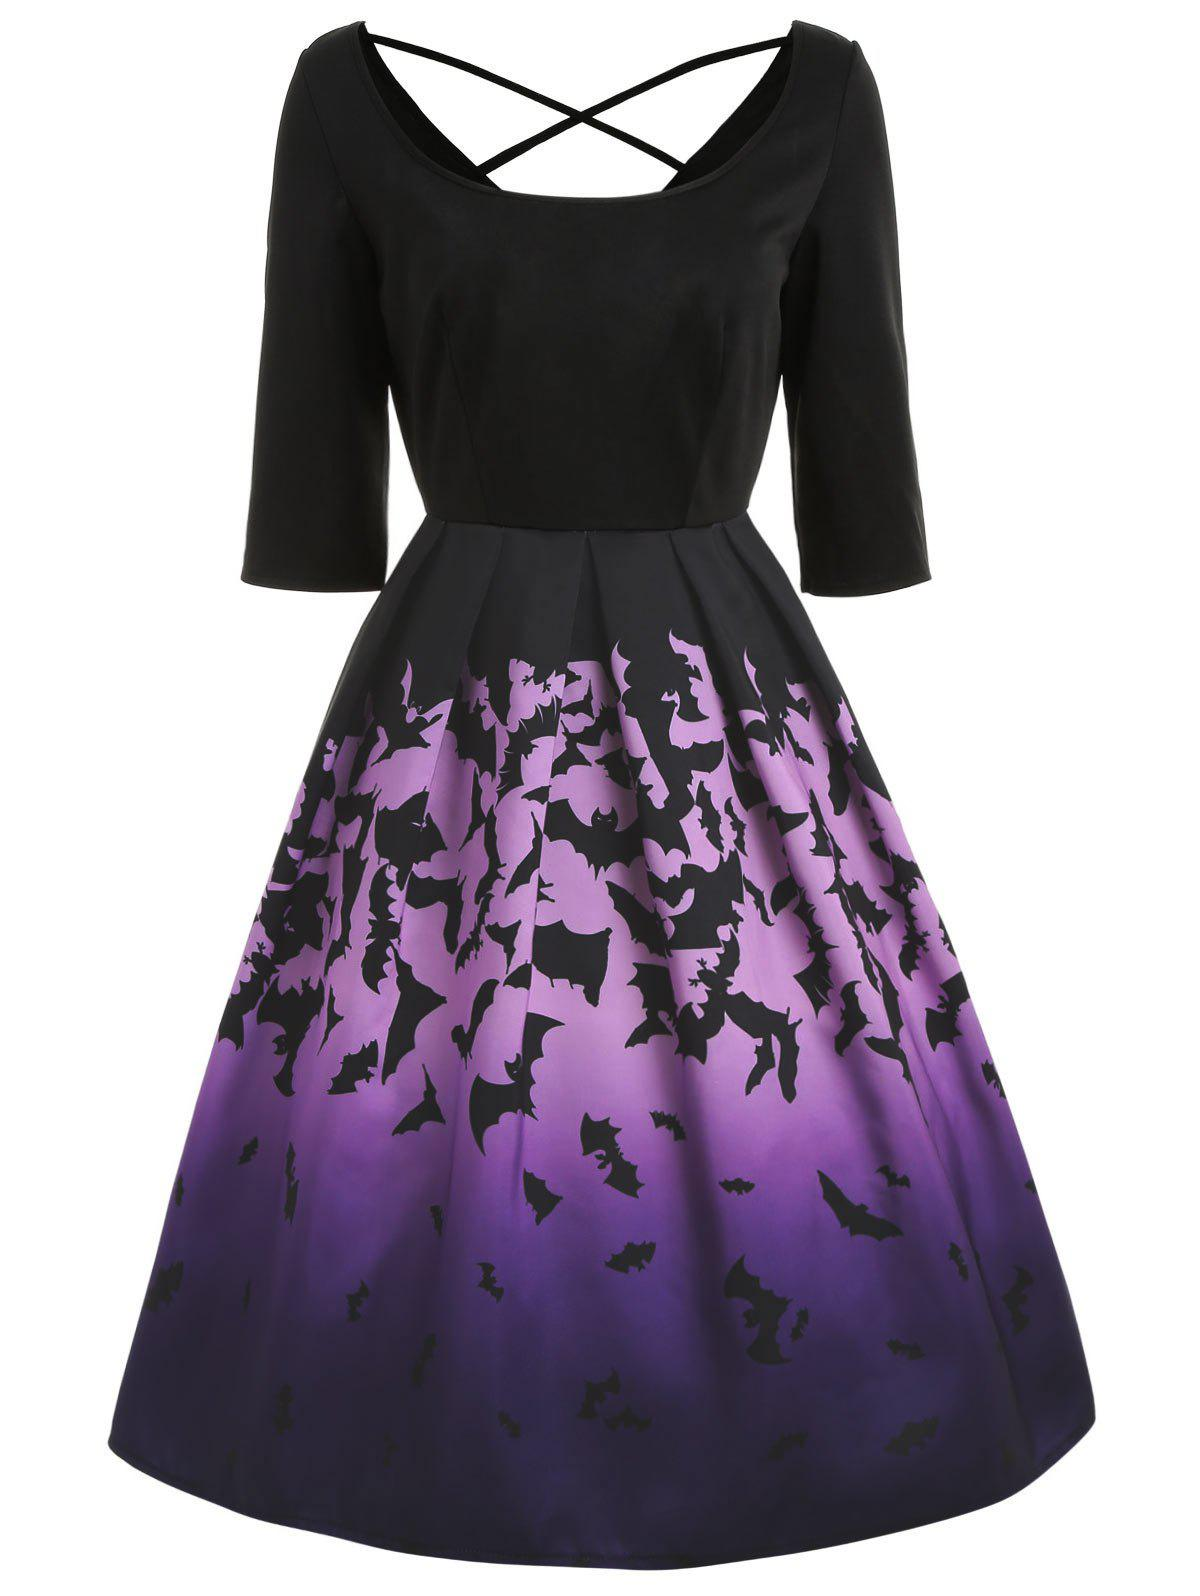 Store Bats Print Square Collar Halloween Dress